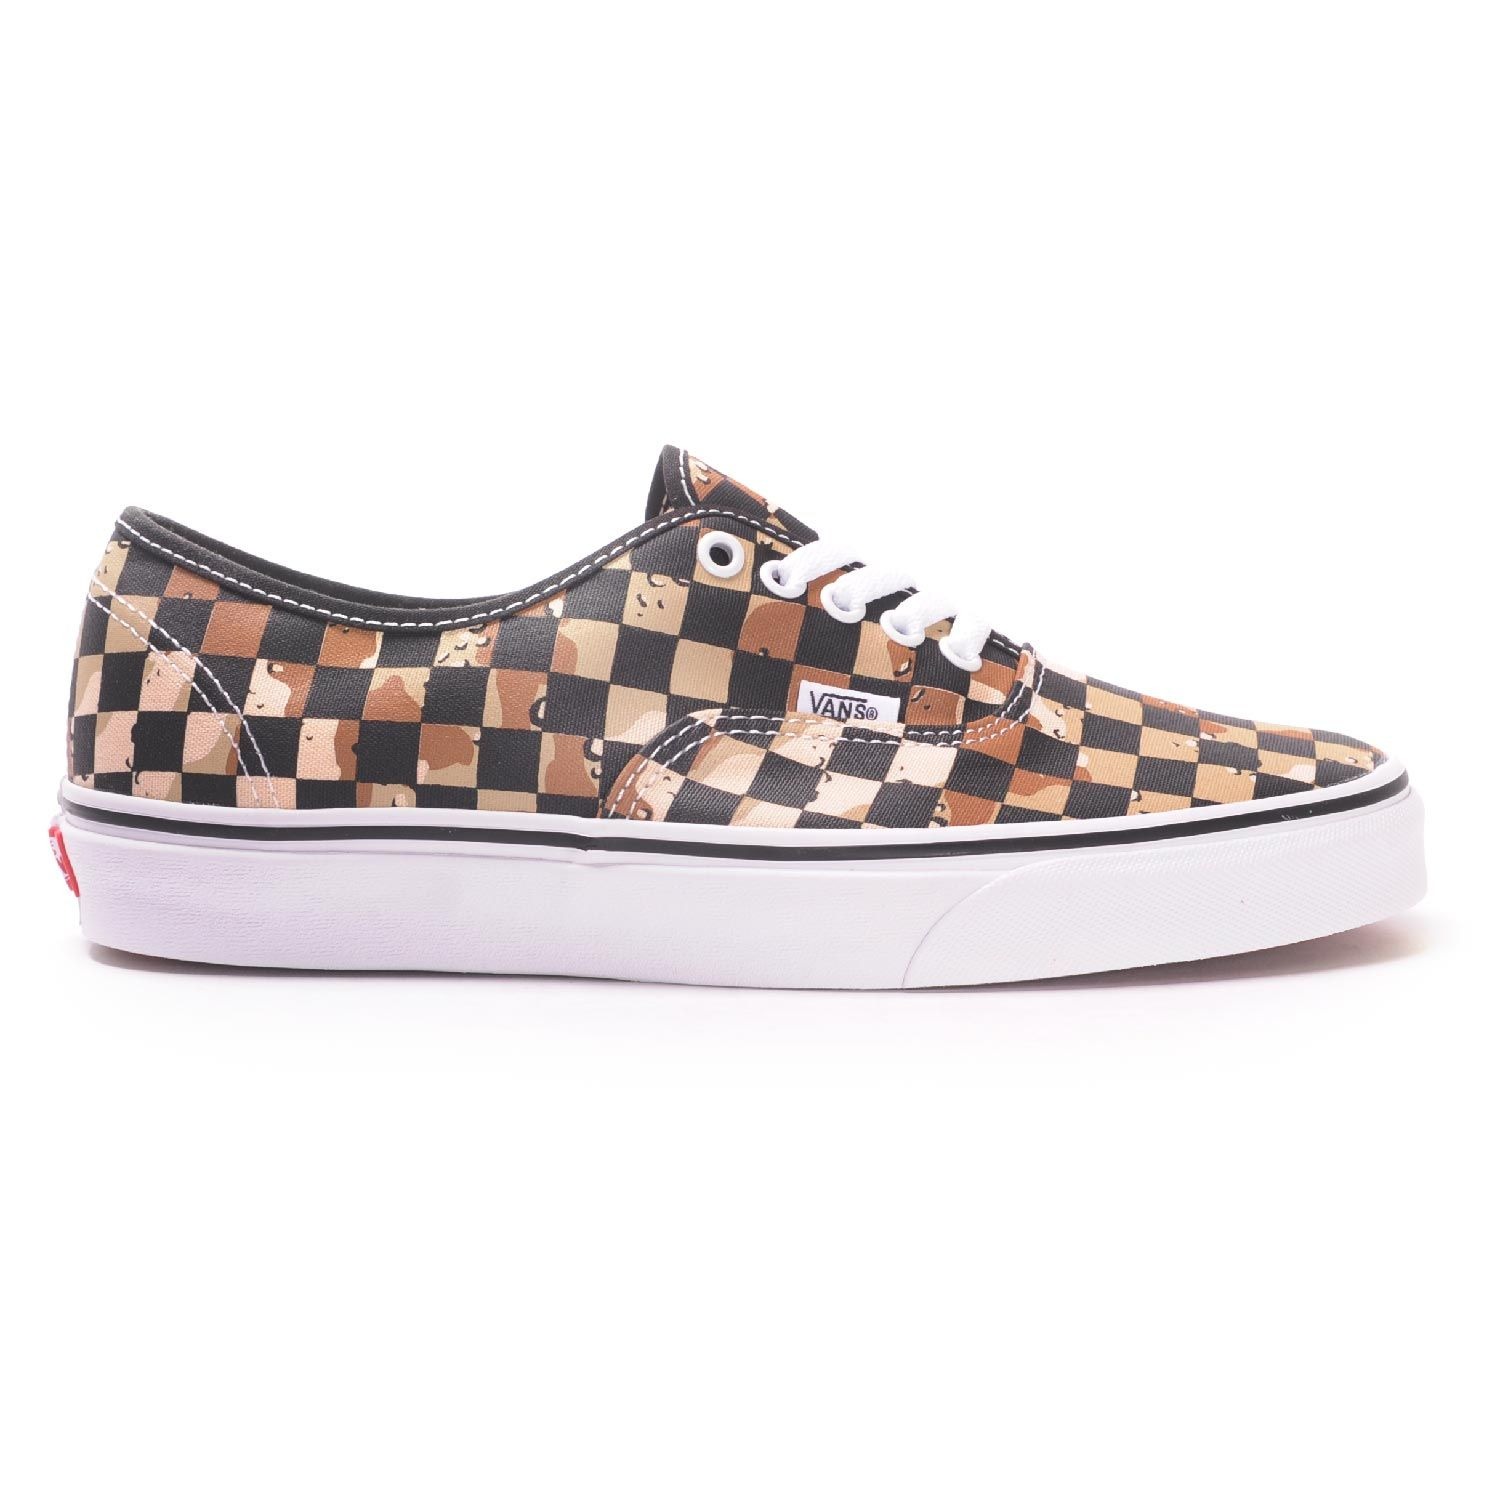 Vans Authentic (Checkerboard Camo DesertTrue White) Men's Skate Shoes